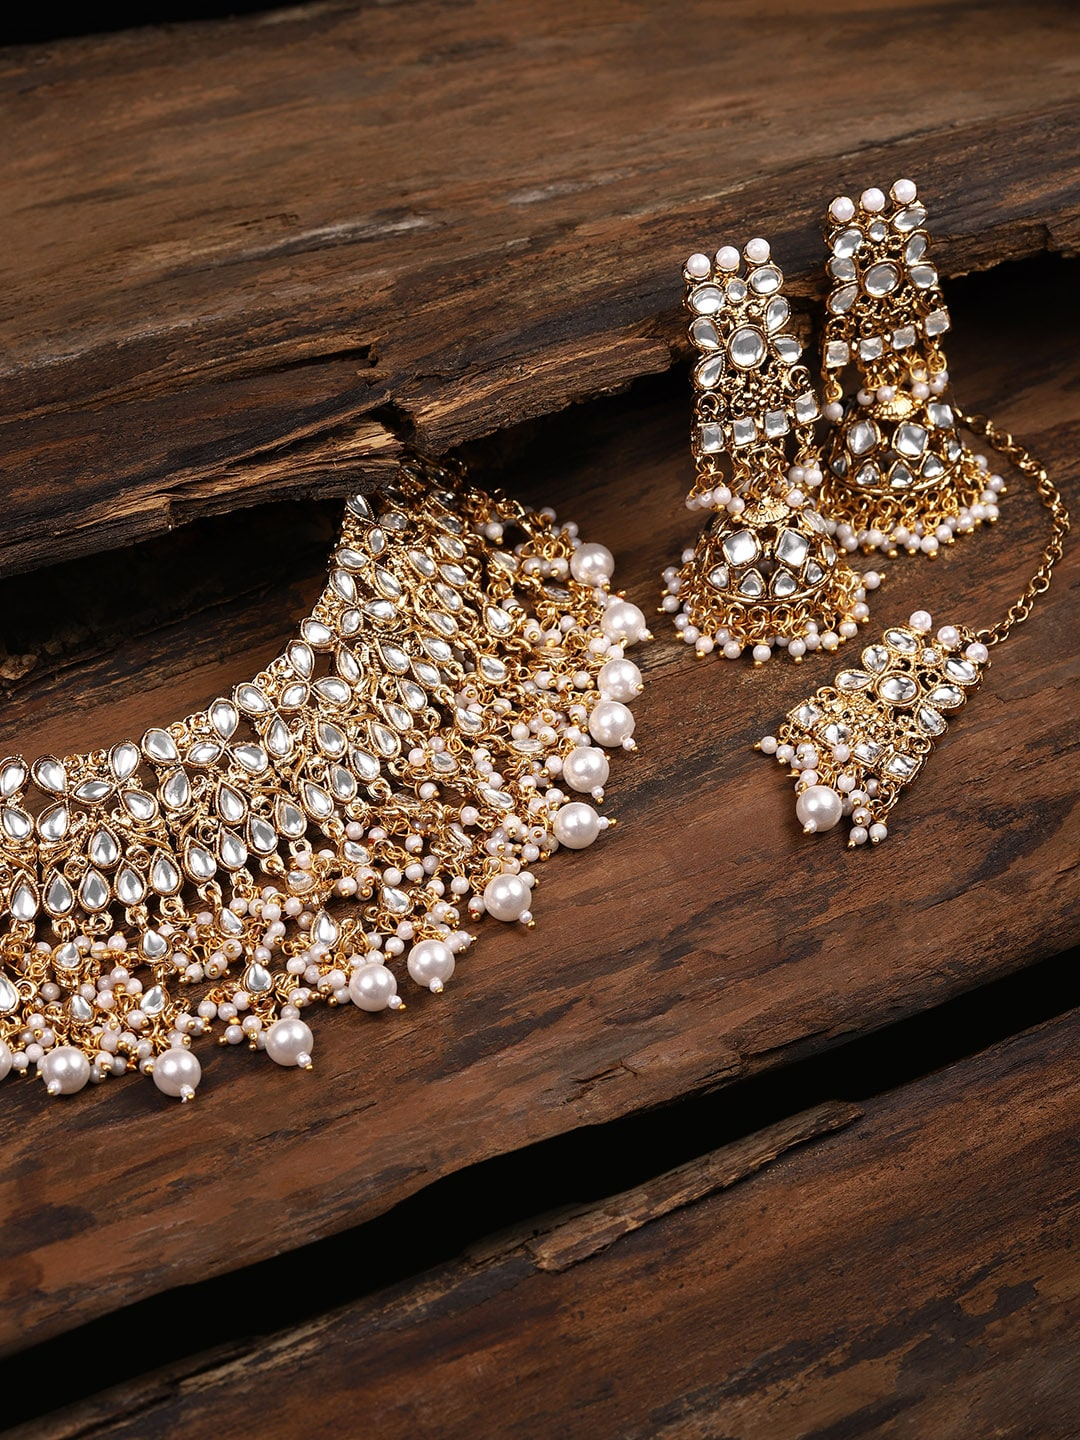 c0350a03f16 Pearl Jewellery - Shop For Real Pearl Jewellery Online